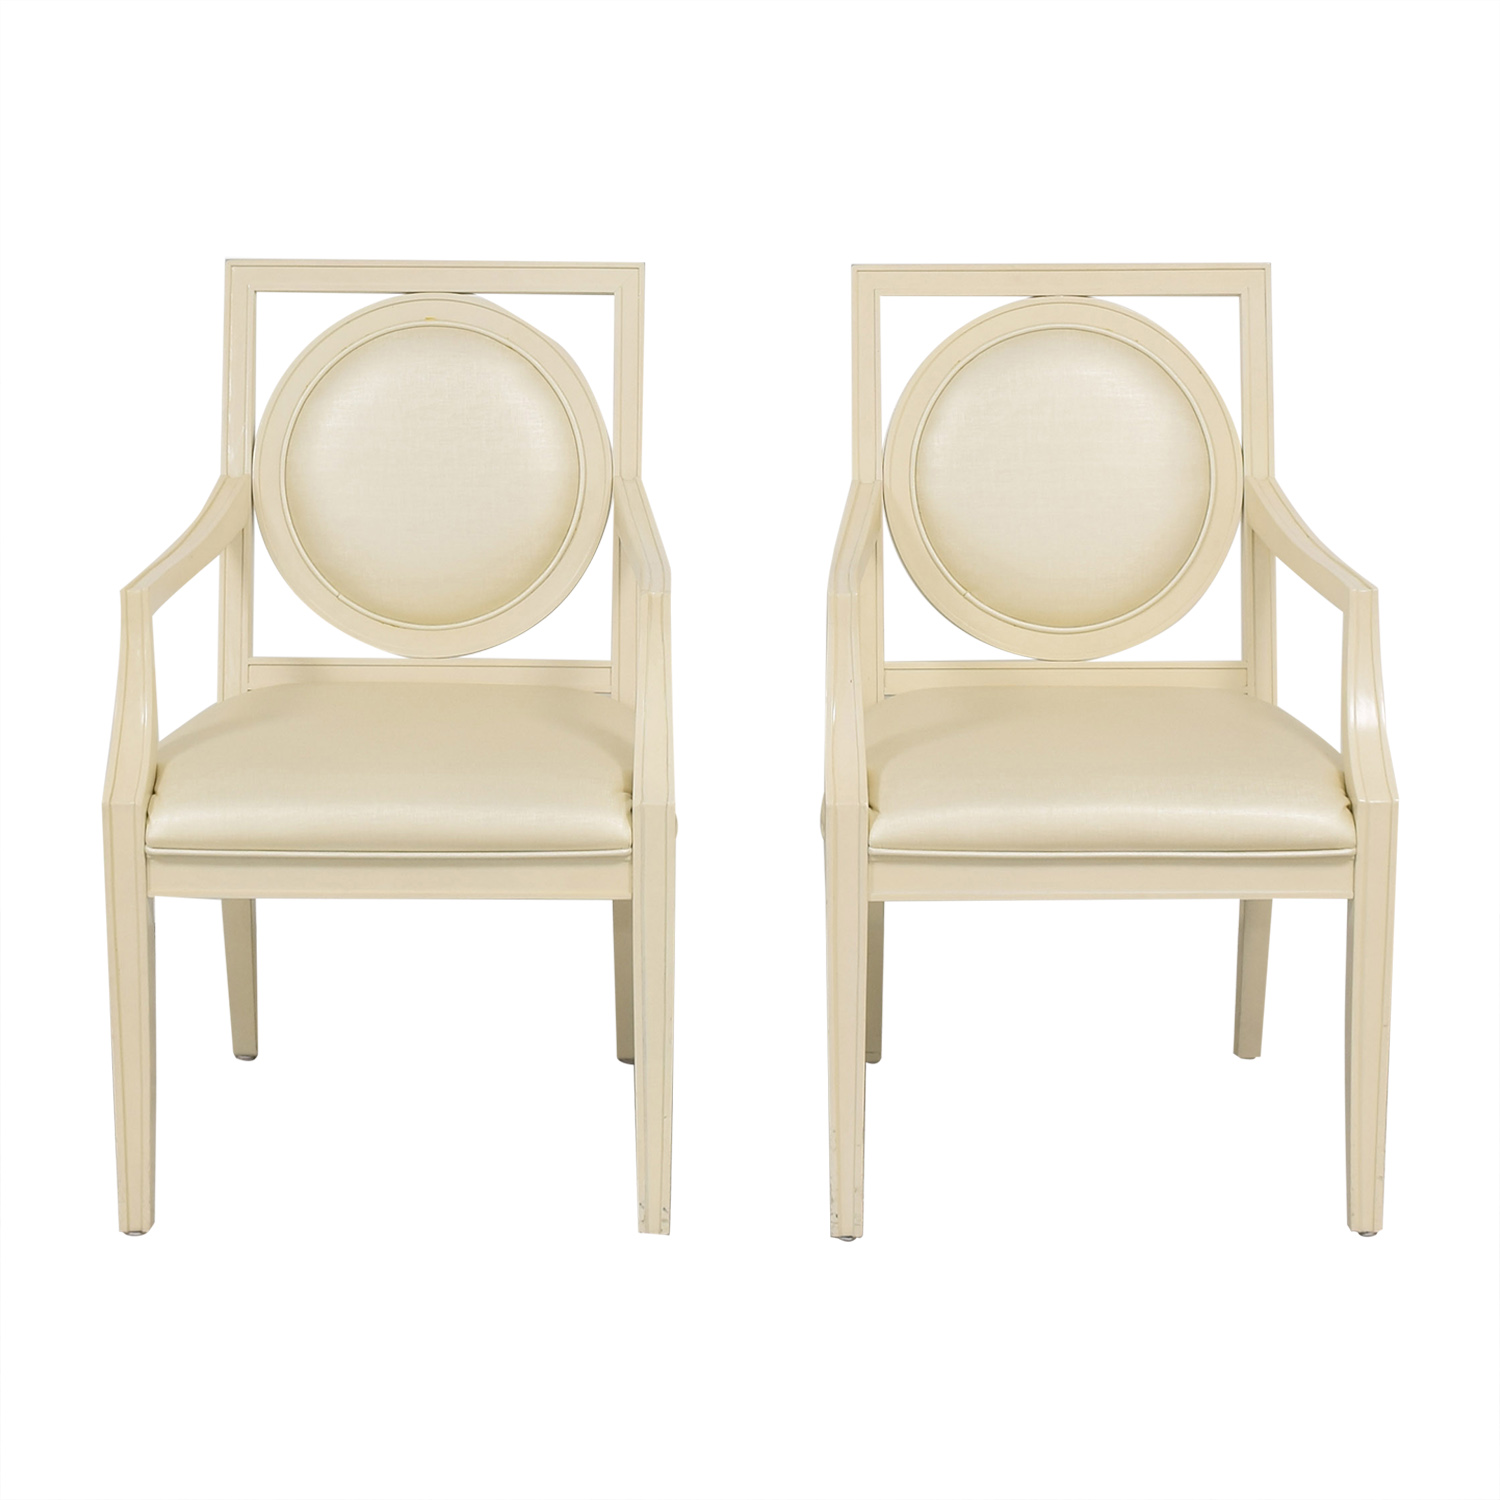 Bernhardt Bernhardt Salon Arm Chairs second hand